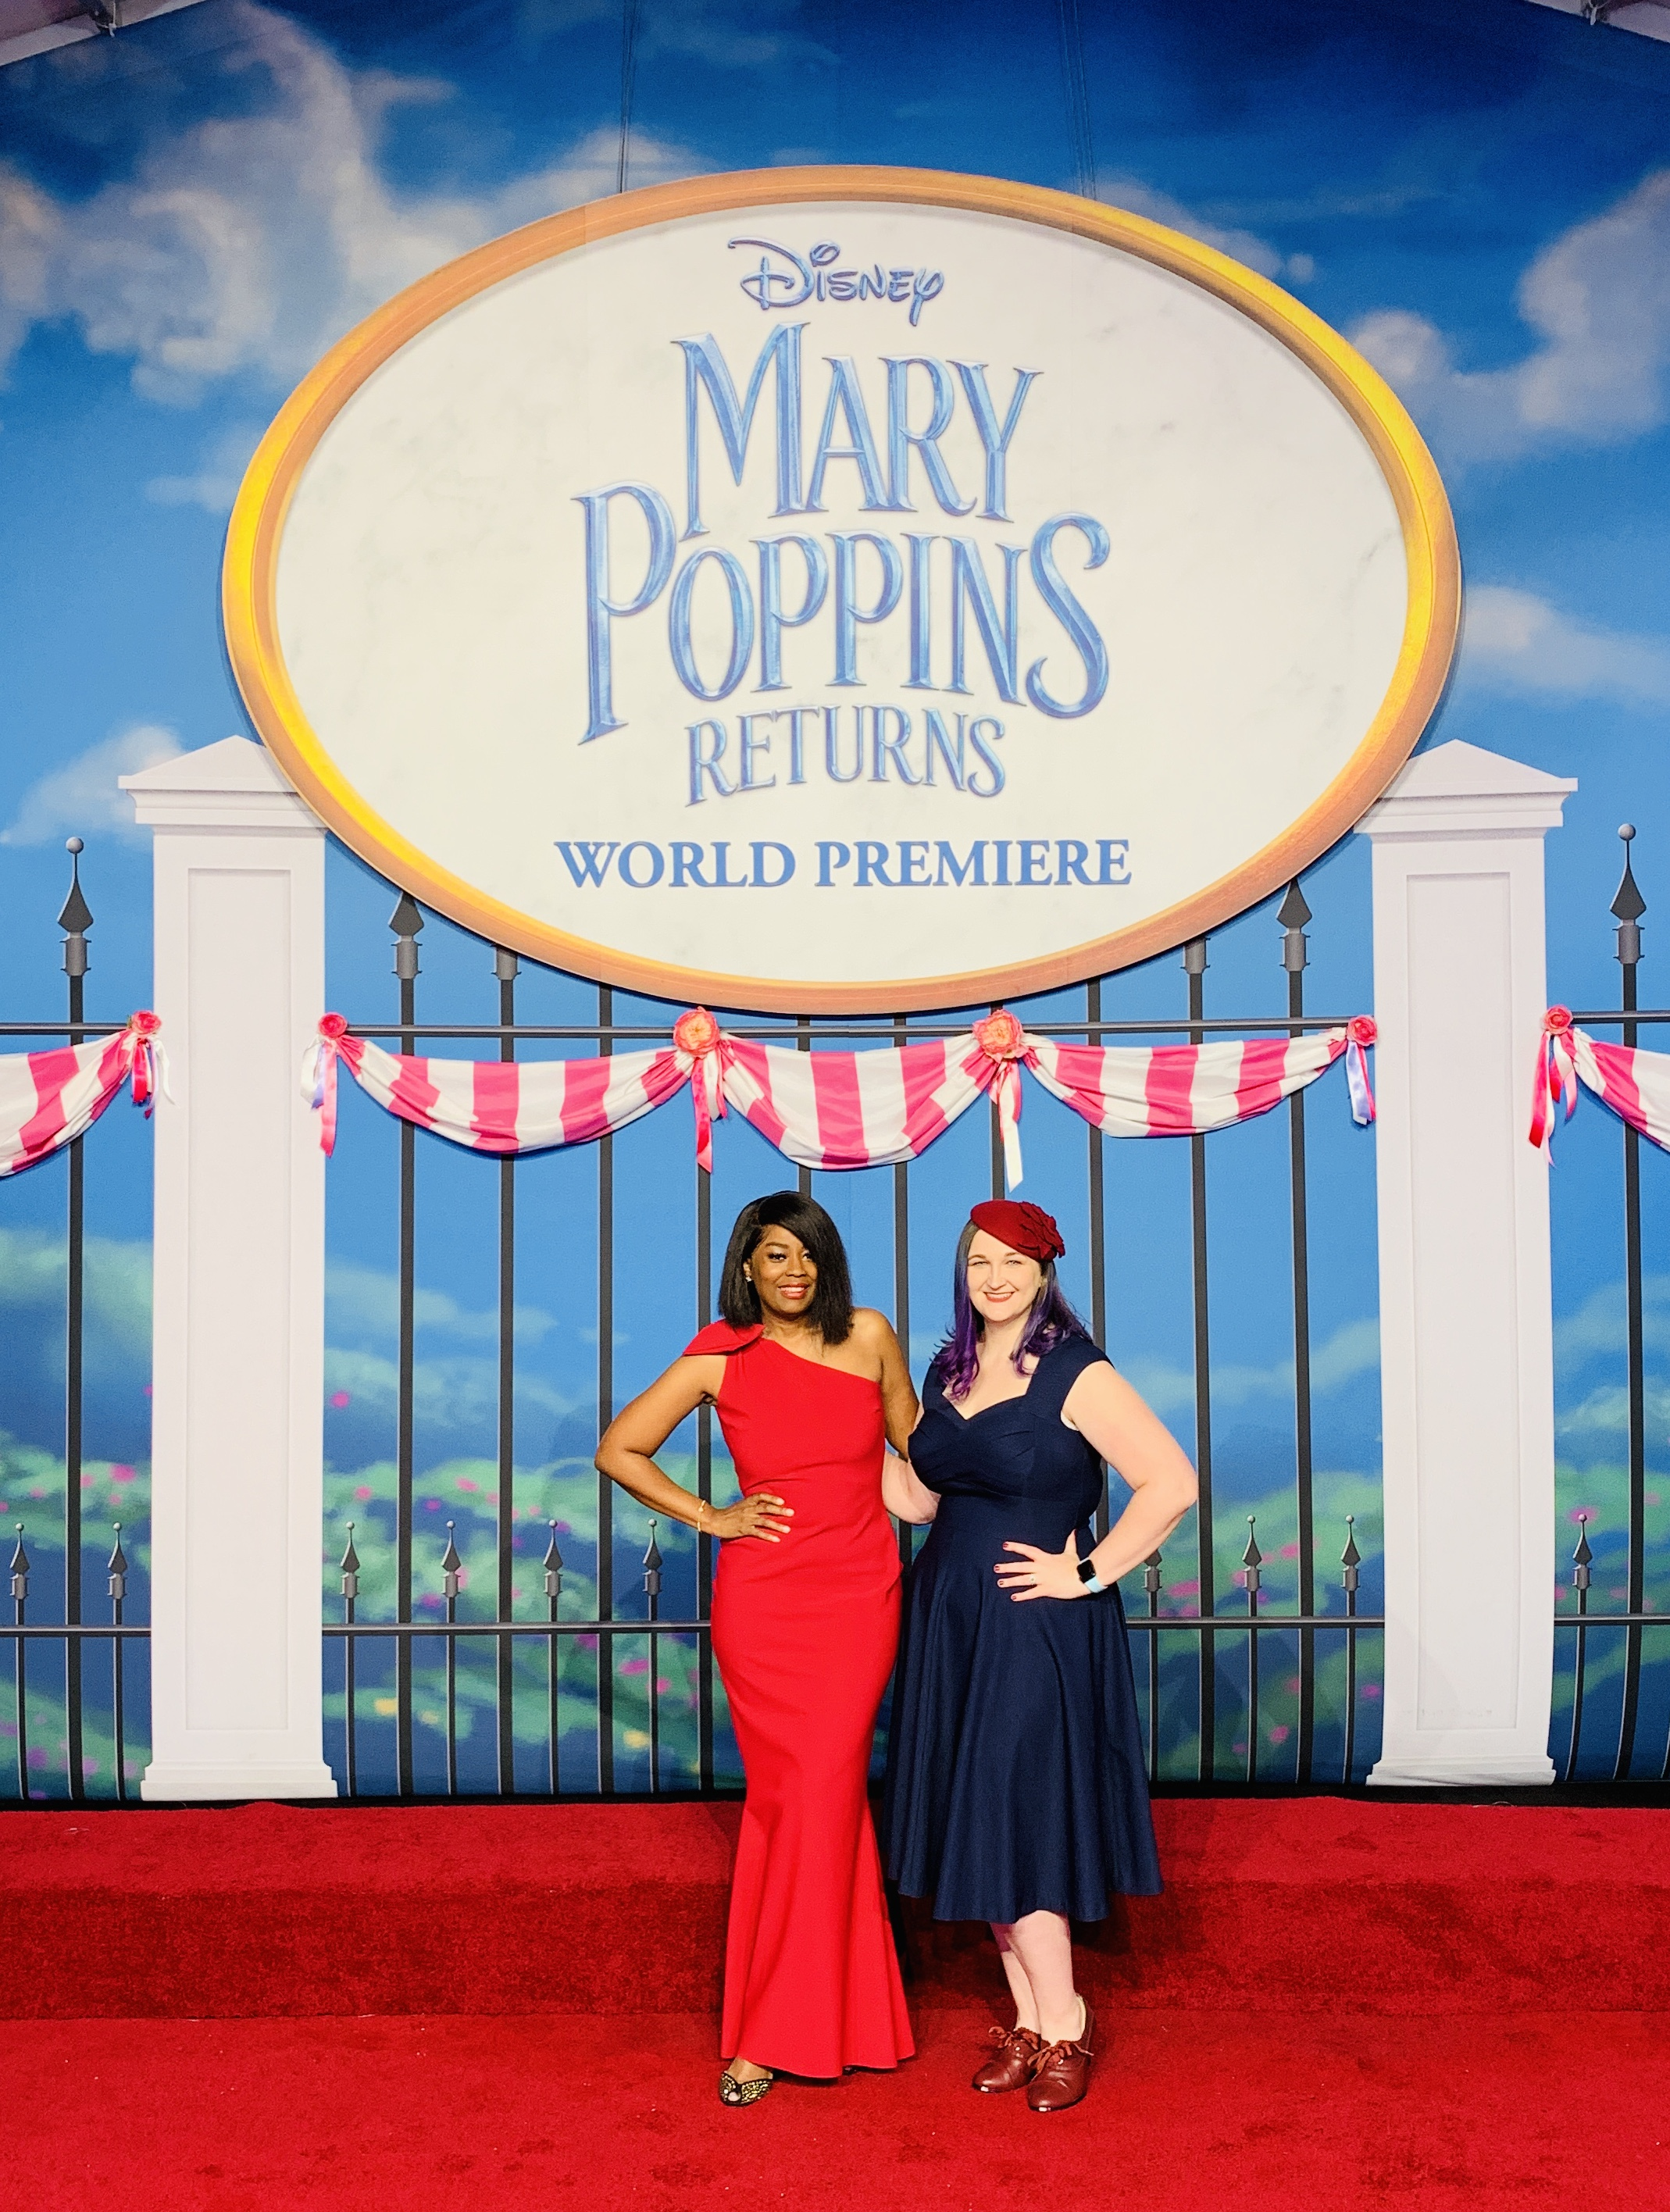 My Red Carpet Experience At Disney Mary Poppins Returns World Premiere In Hollywood